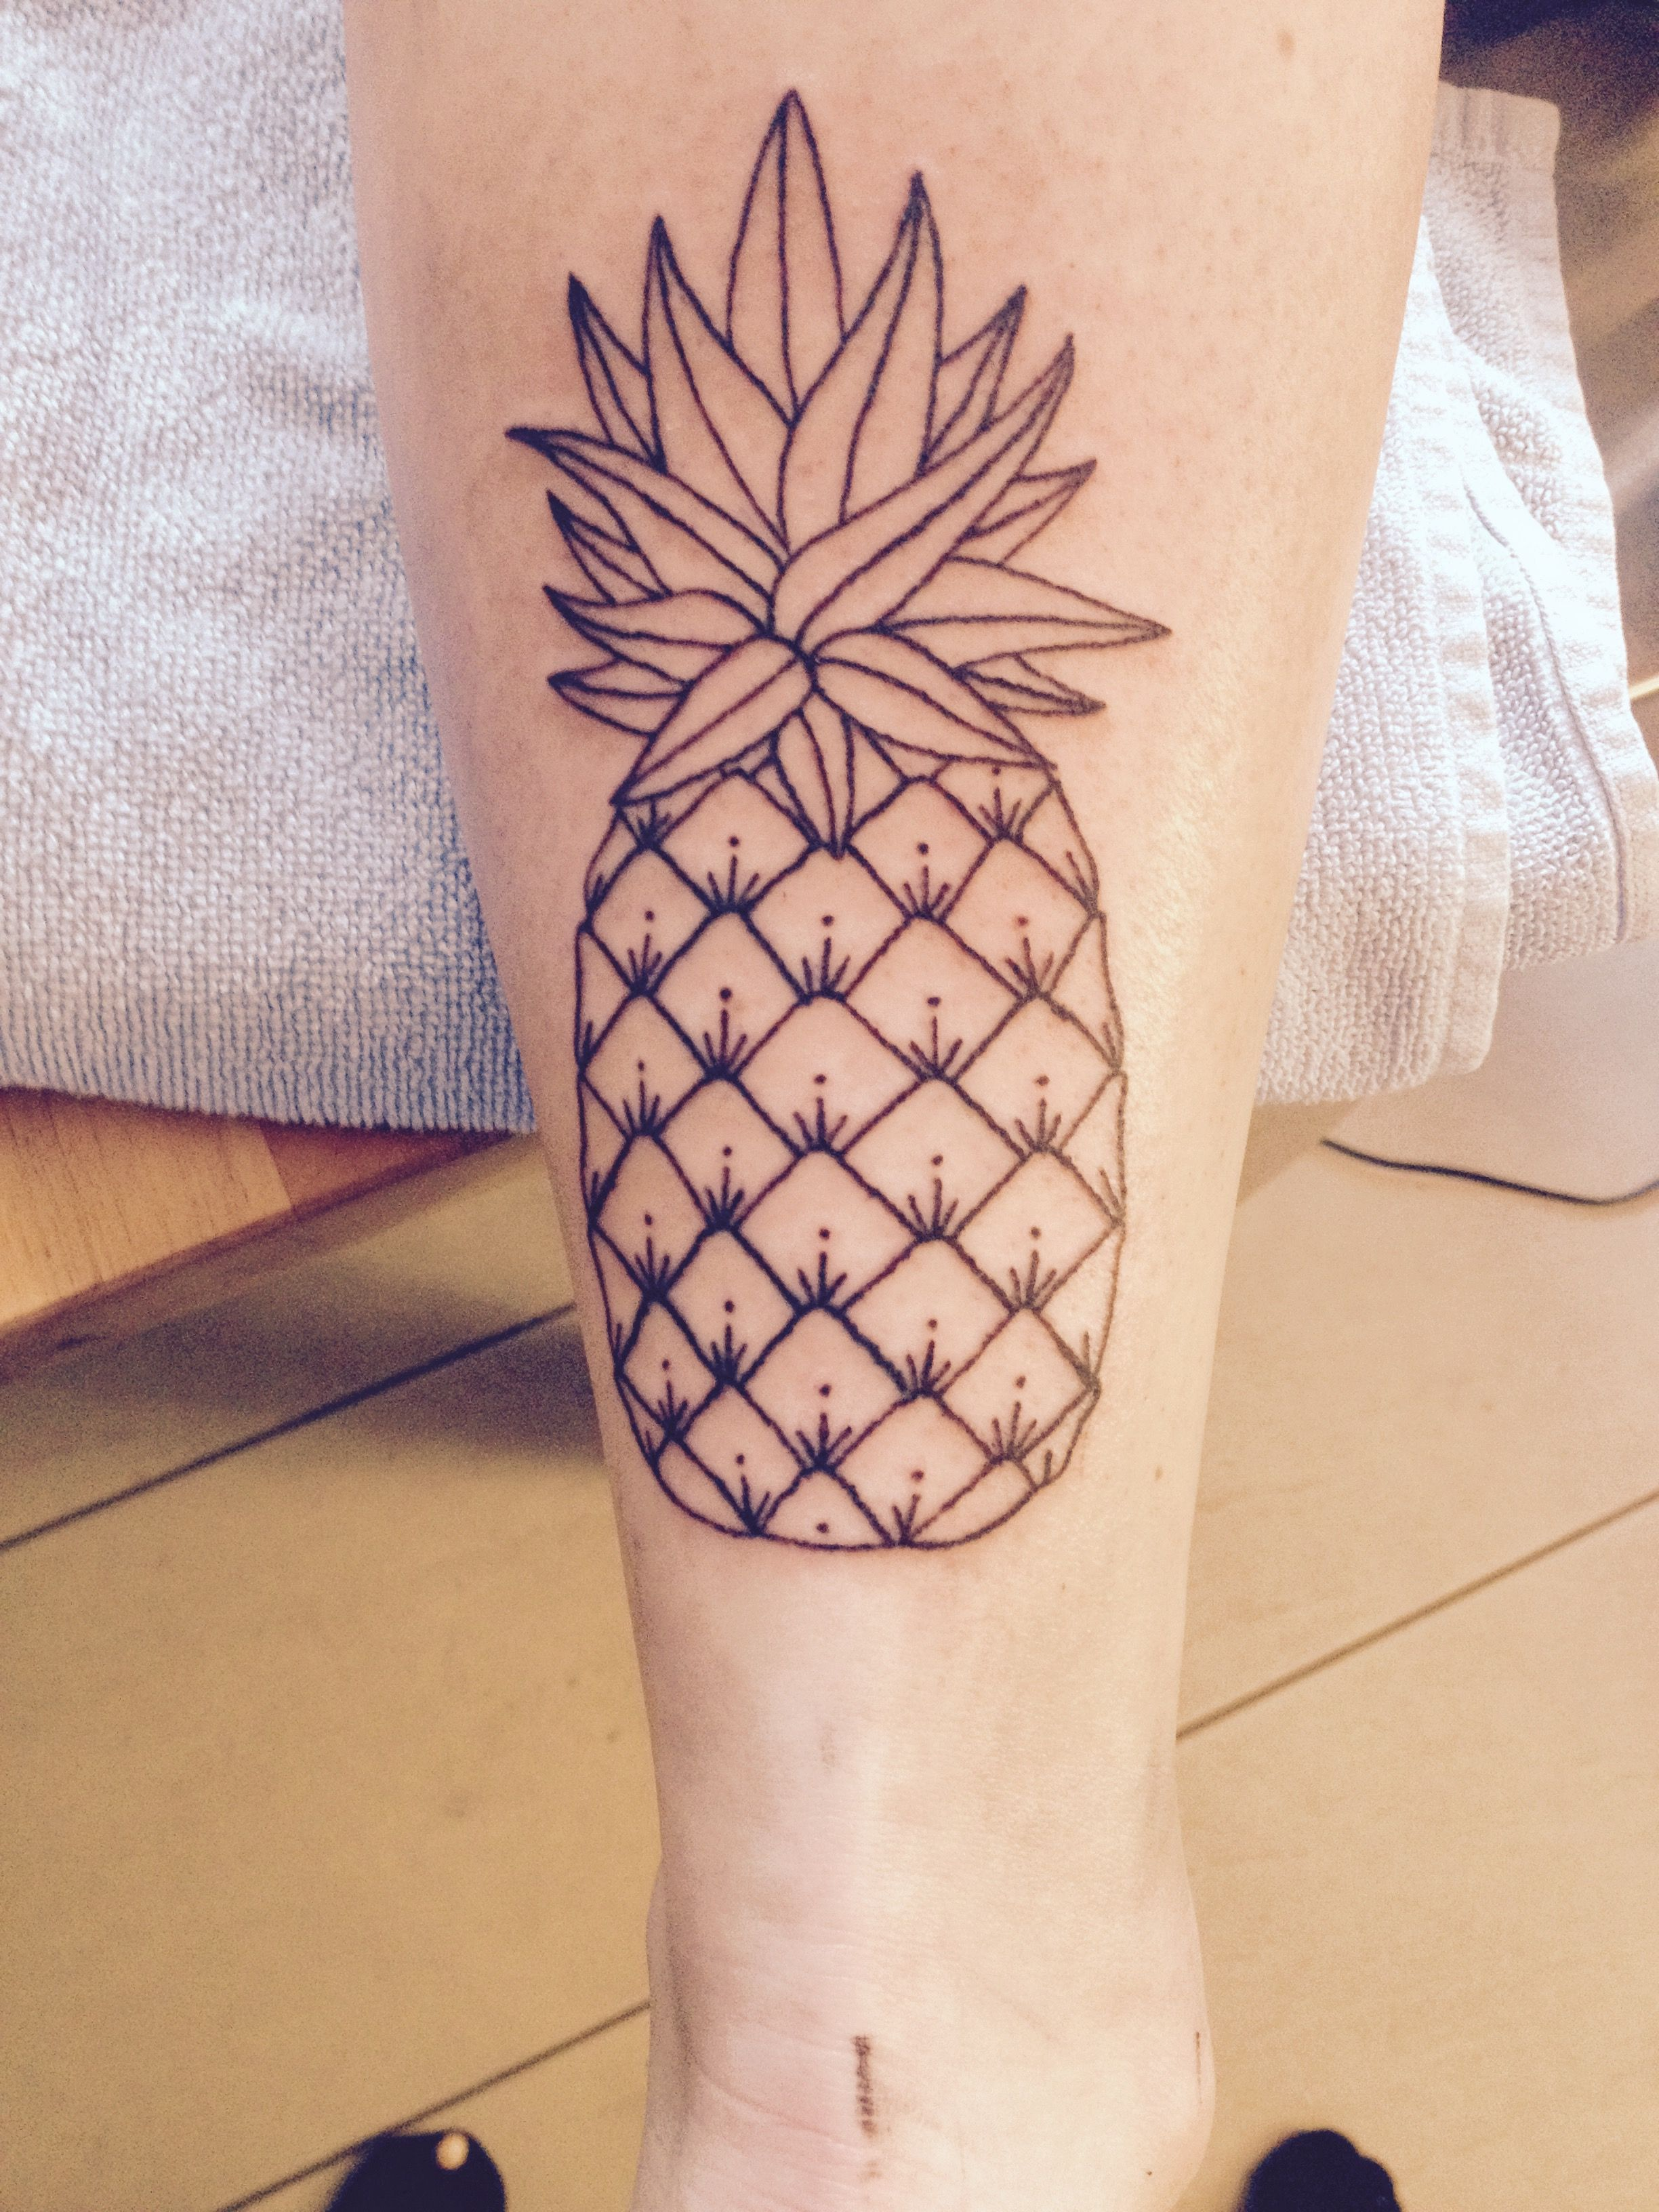 Pineapple tattoo for n. #pinappletattoo